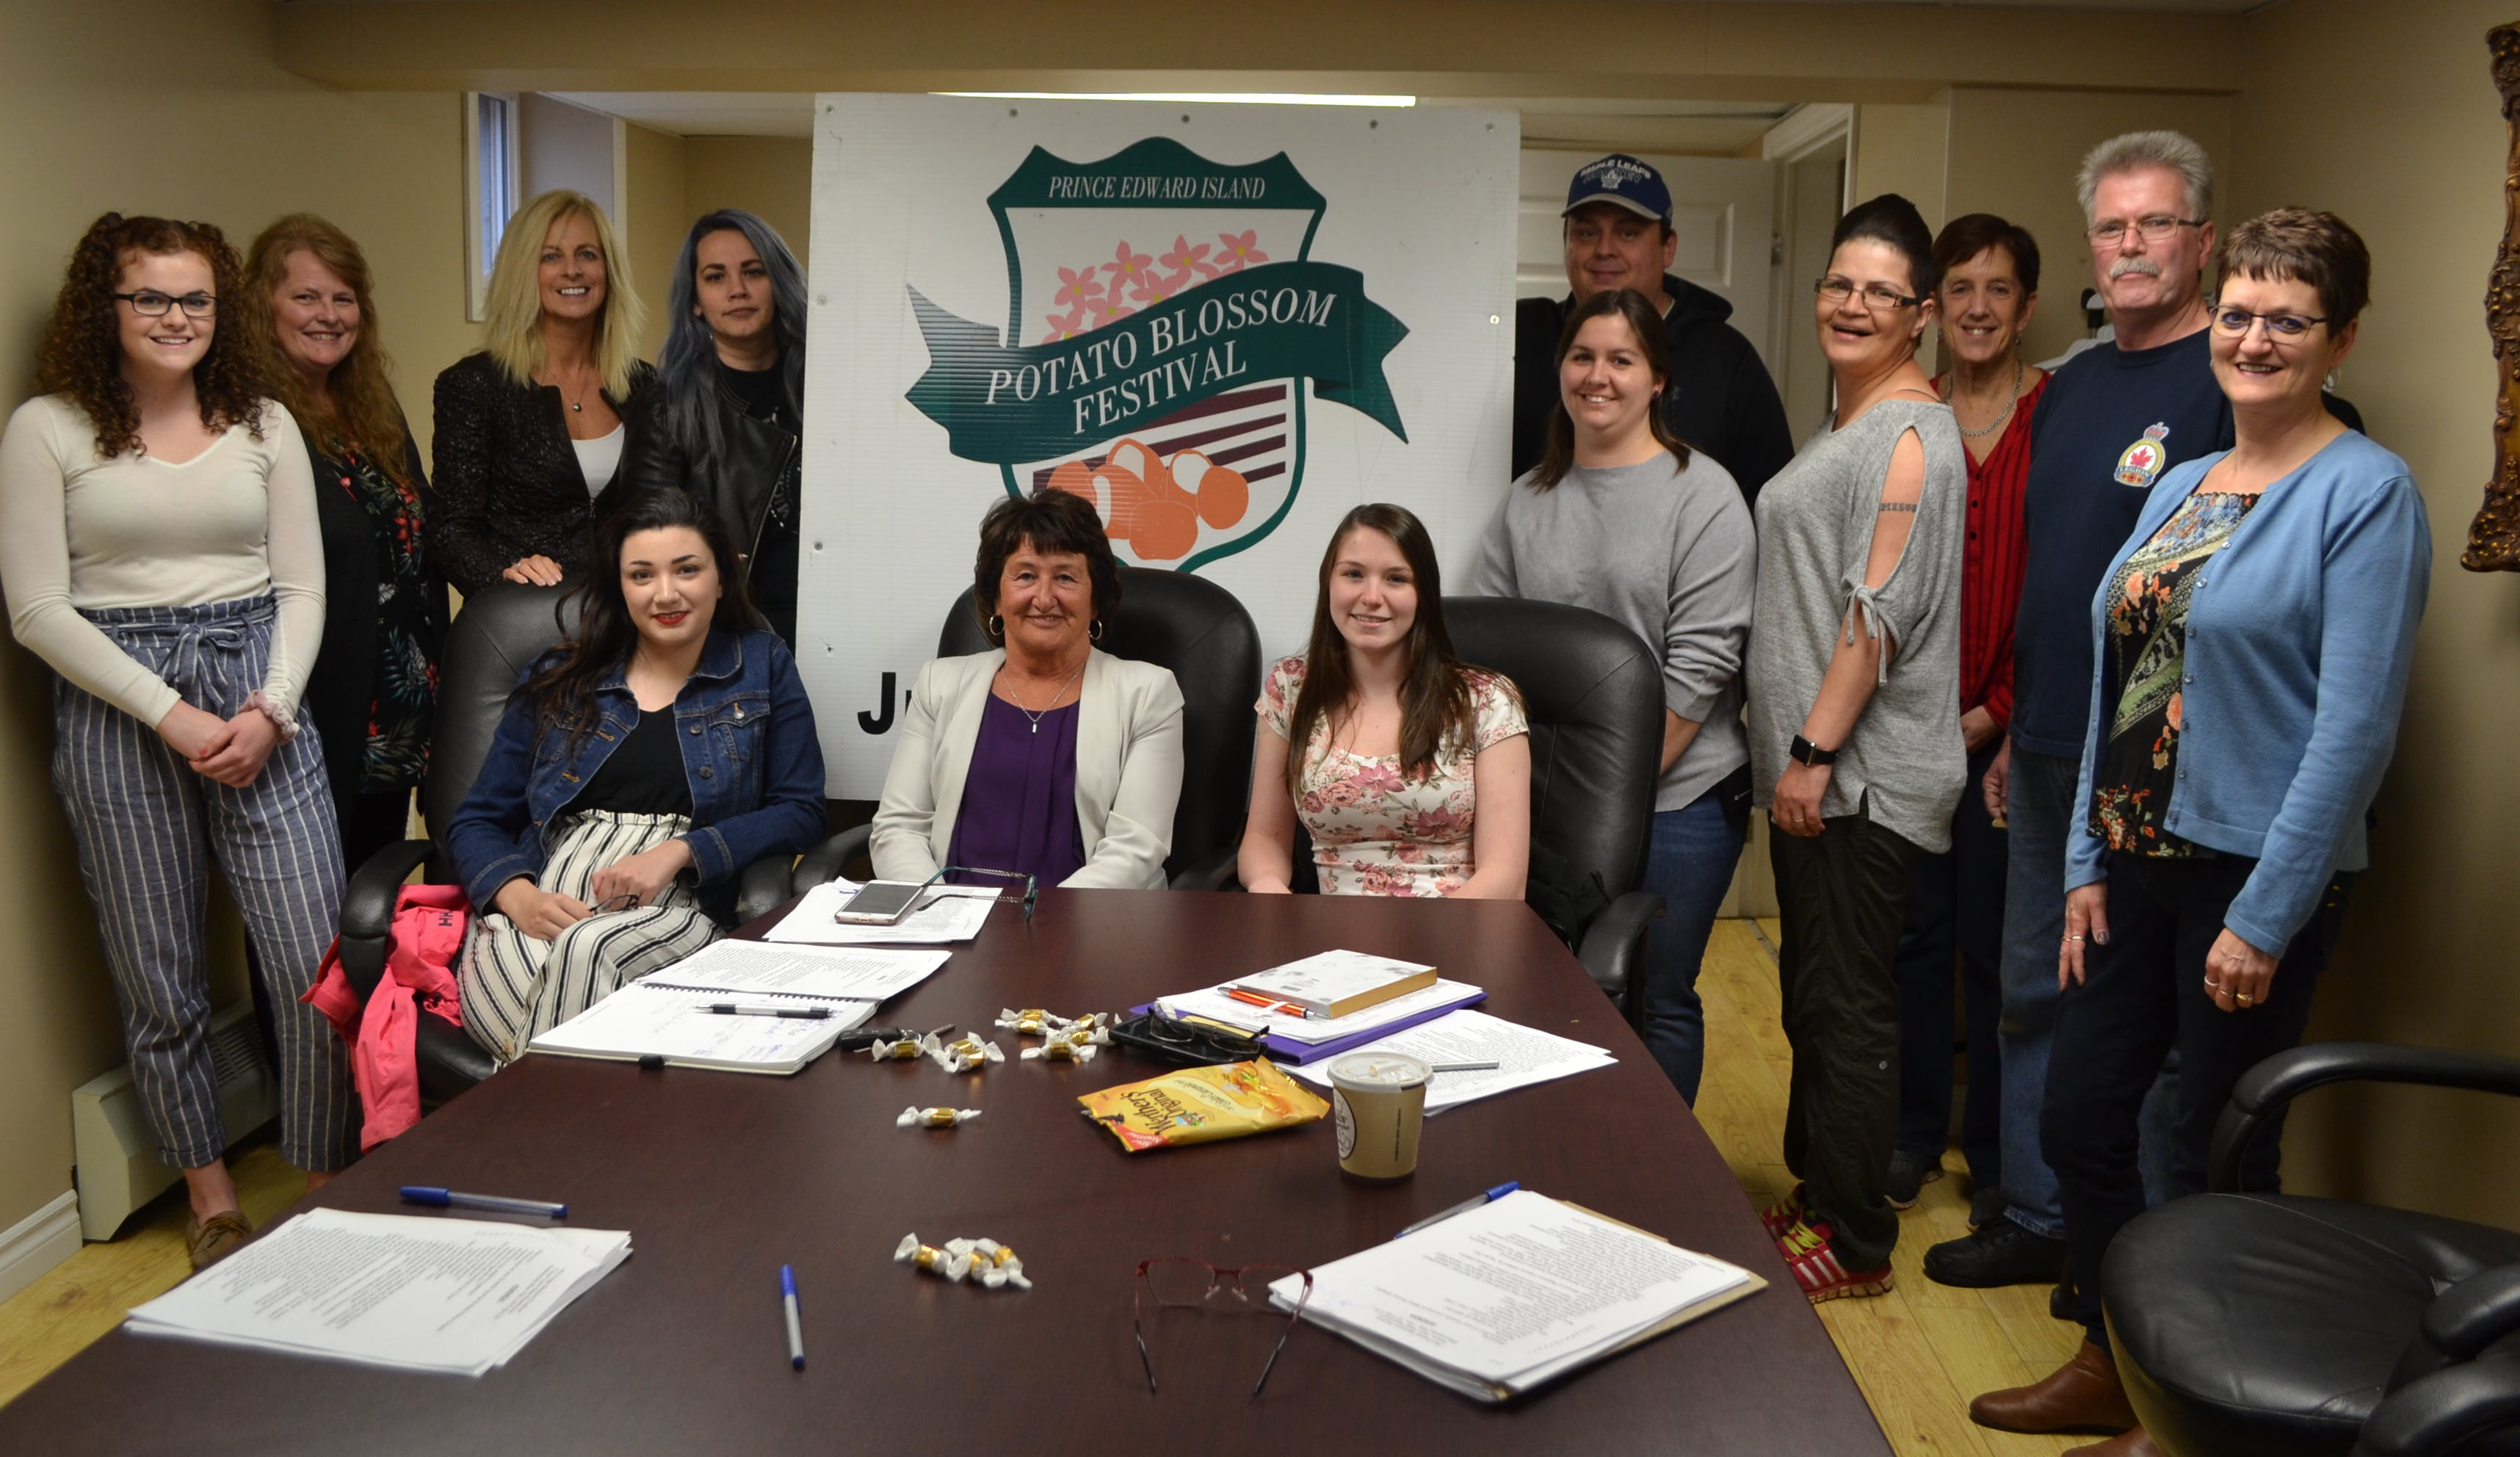 Helping with the planning for the 51st annual P.E.I. Potato Blossom Festival are, seated from left, Olivia Collicutt, Faye MacWilliams, Jessica Howard; standing, Breanna Rayner, Trish Child, Carol Ferguson, Tasha Maynard, Valene Gallant, Andrew Avery, Tracy Sweet, Eileen Conway-Martin, Grant Gay and Edna Gallant.